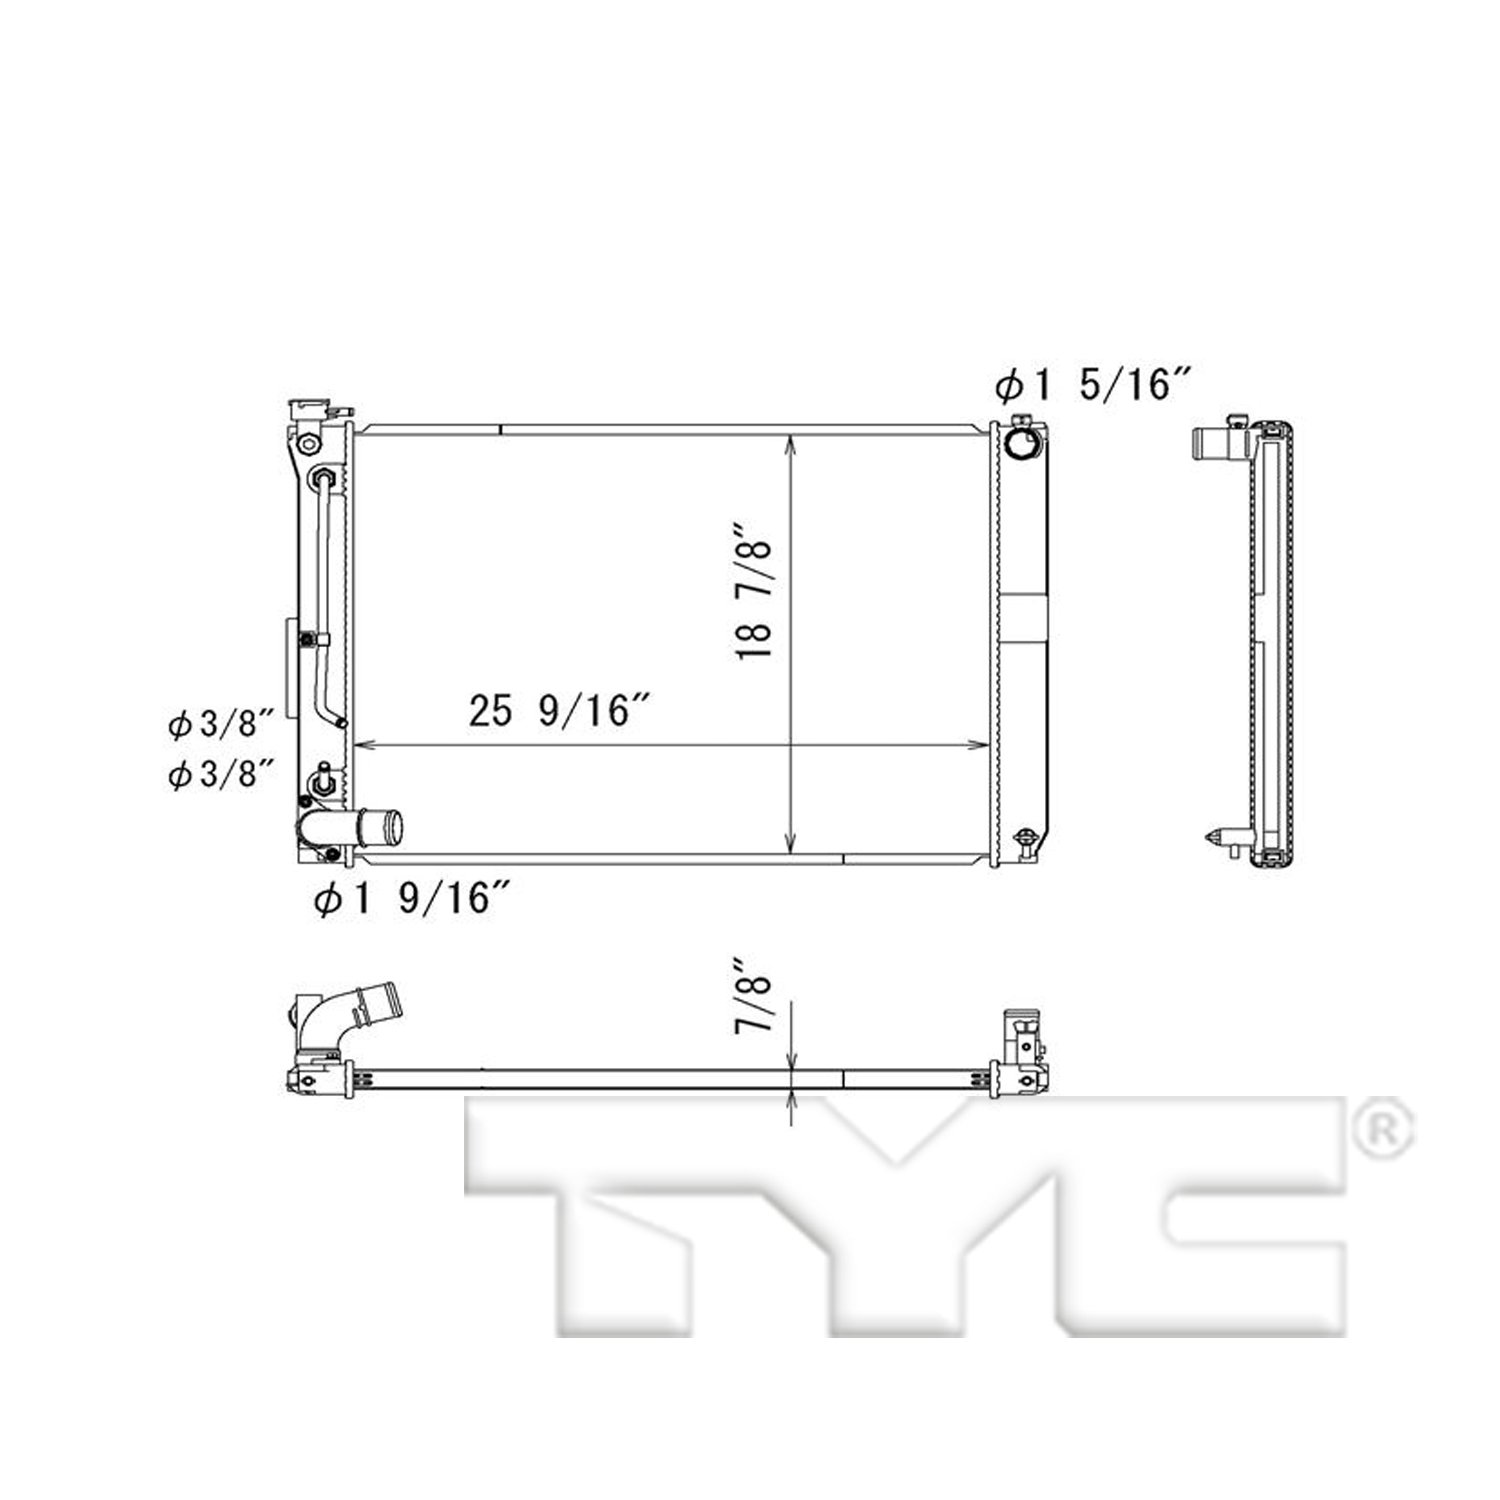 Tyc 13256 Replacement Radiator Automotive Charging Circuit Diagram For The 1949 Cadillac All Models